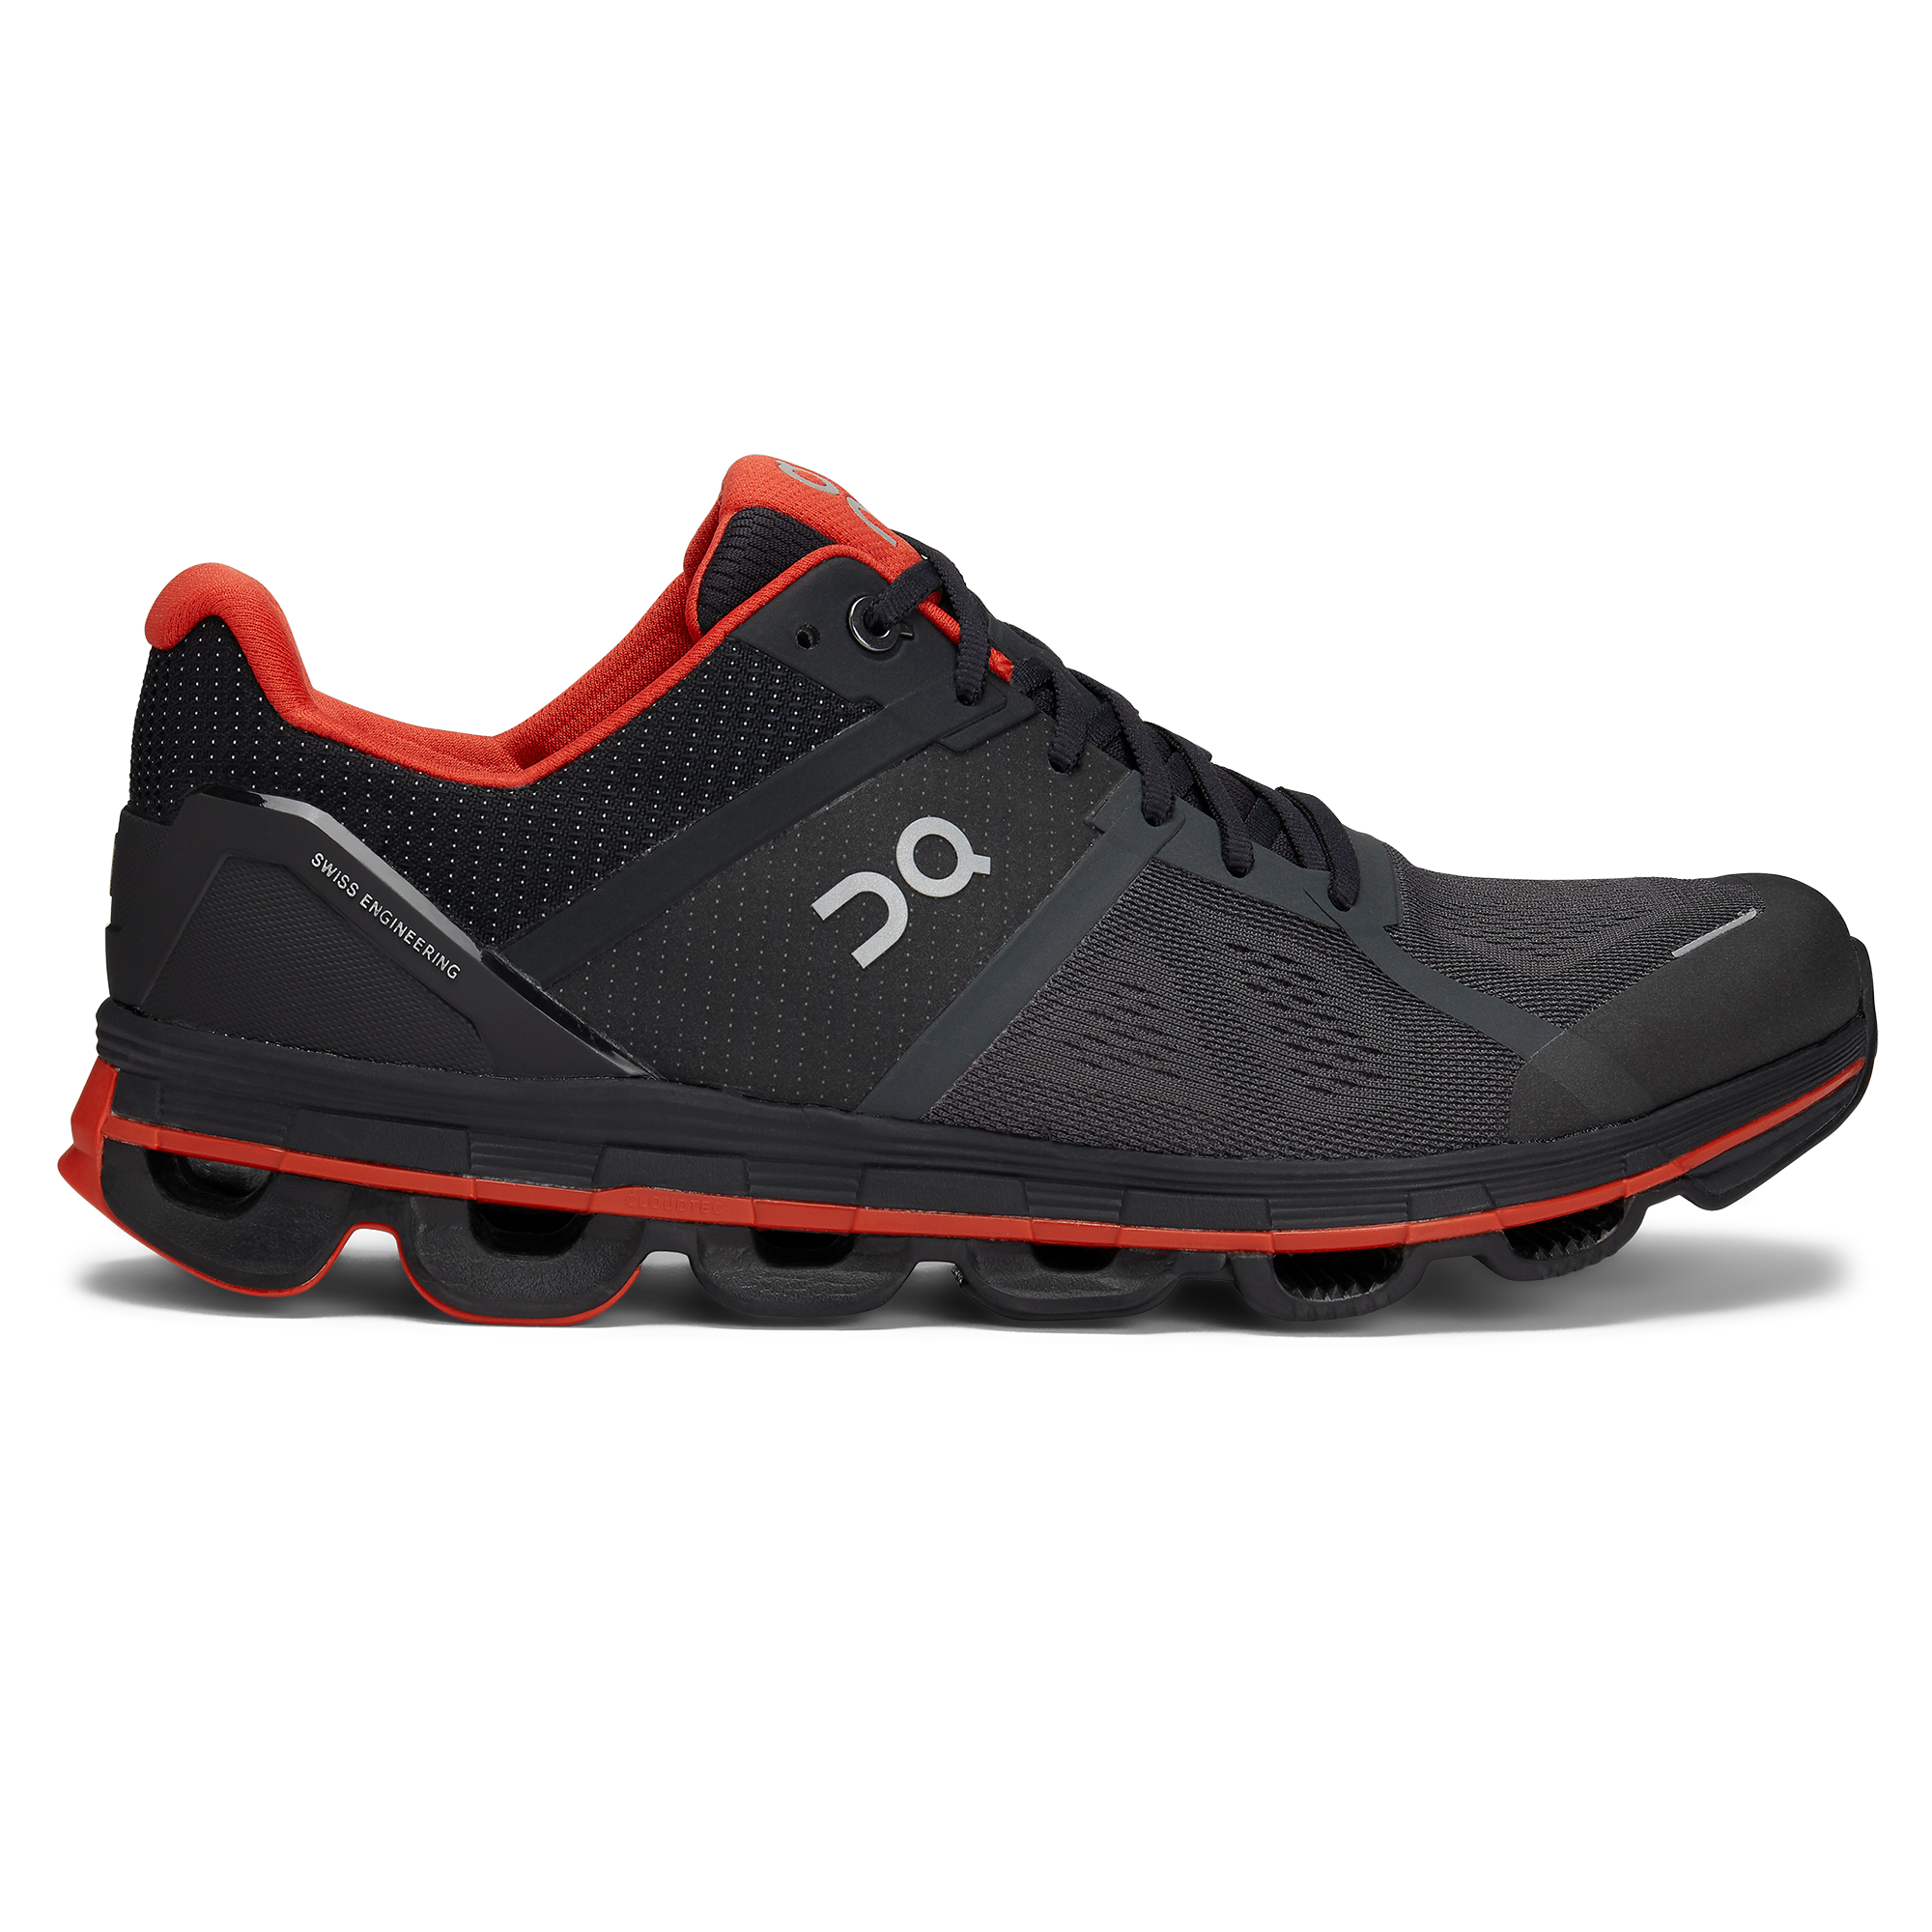 Cloudace - Support Running Shoe   On